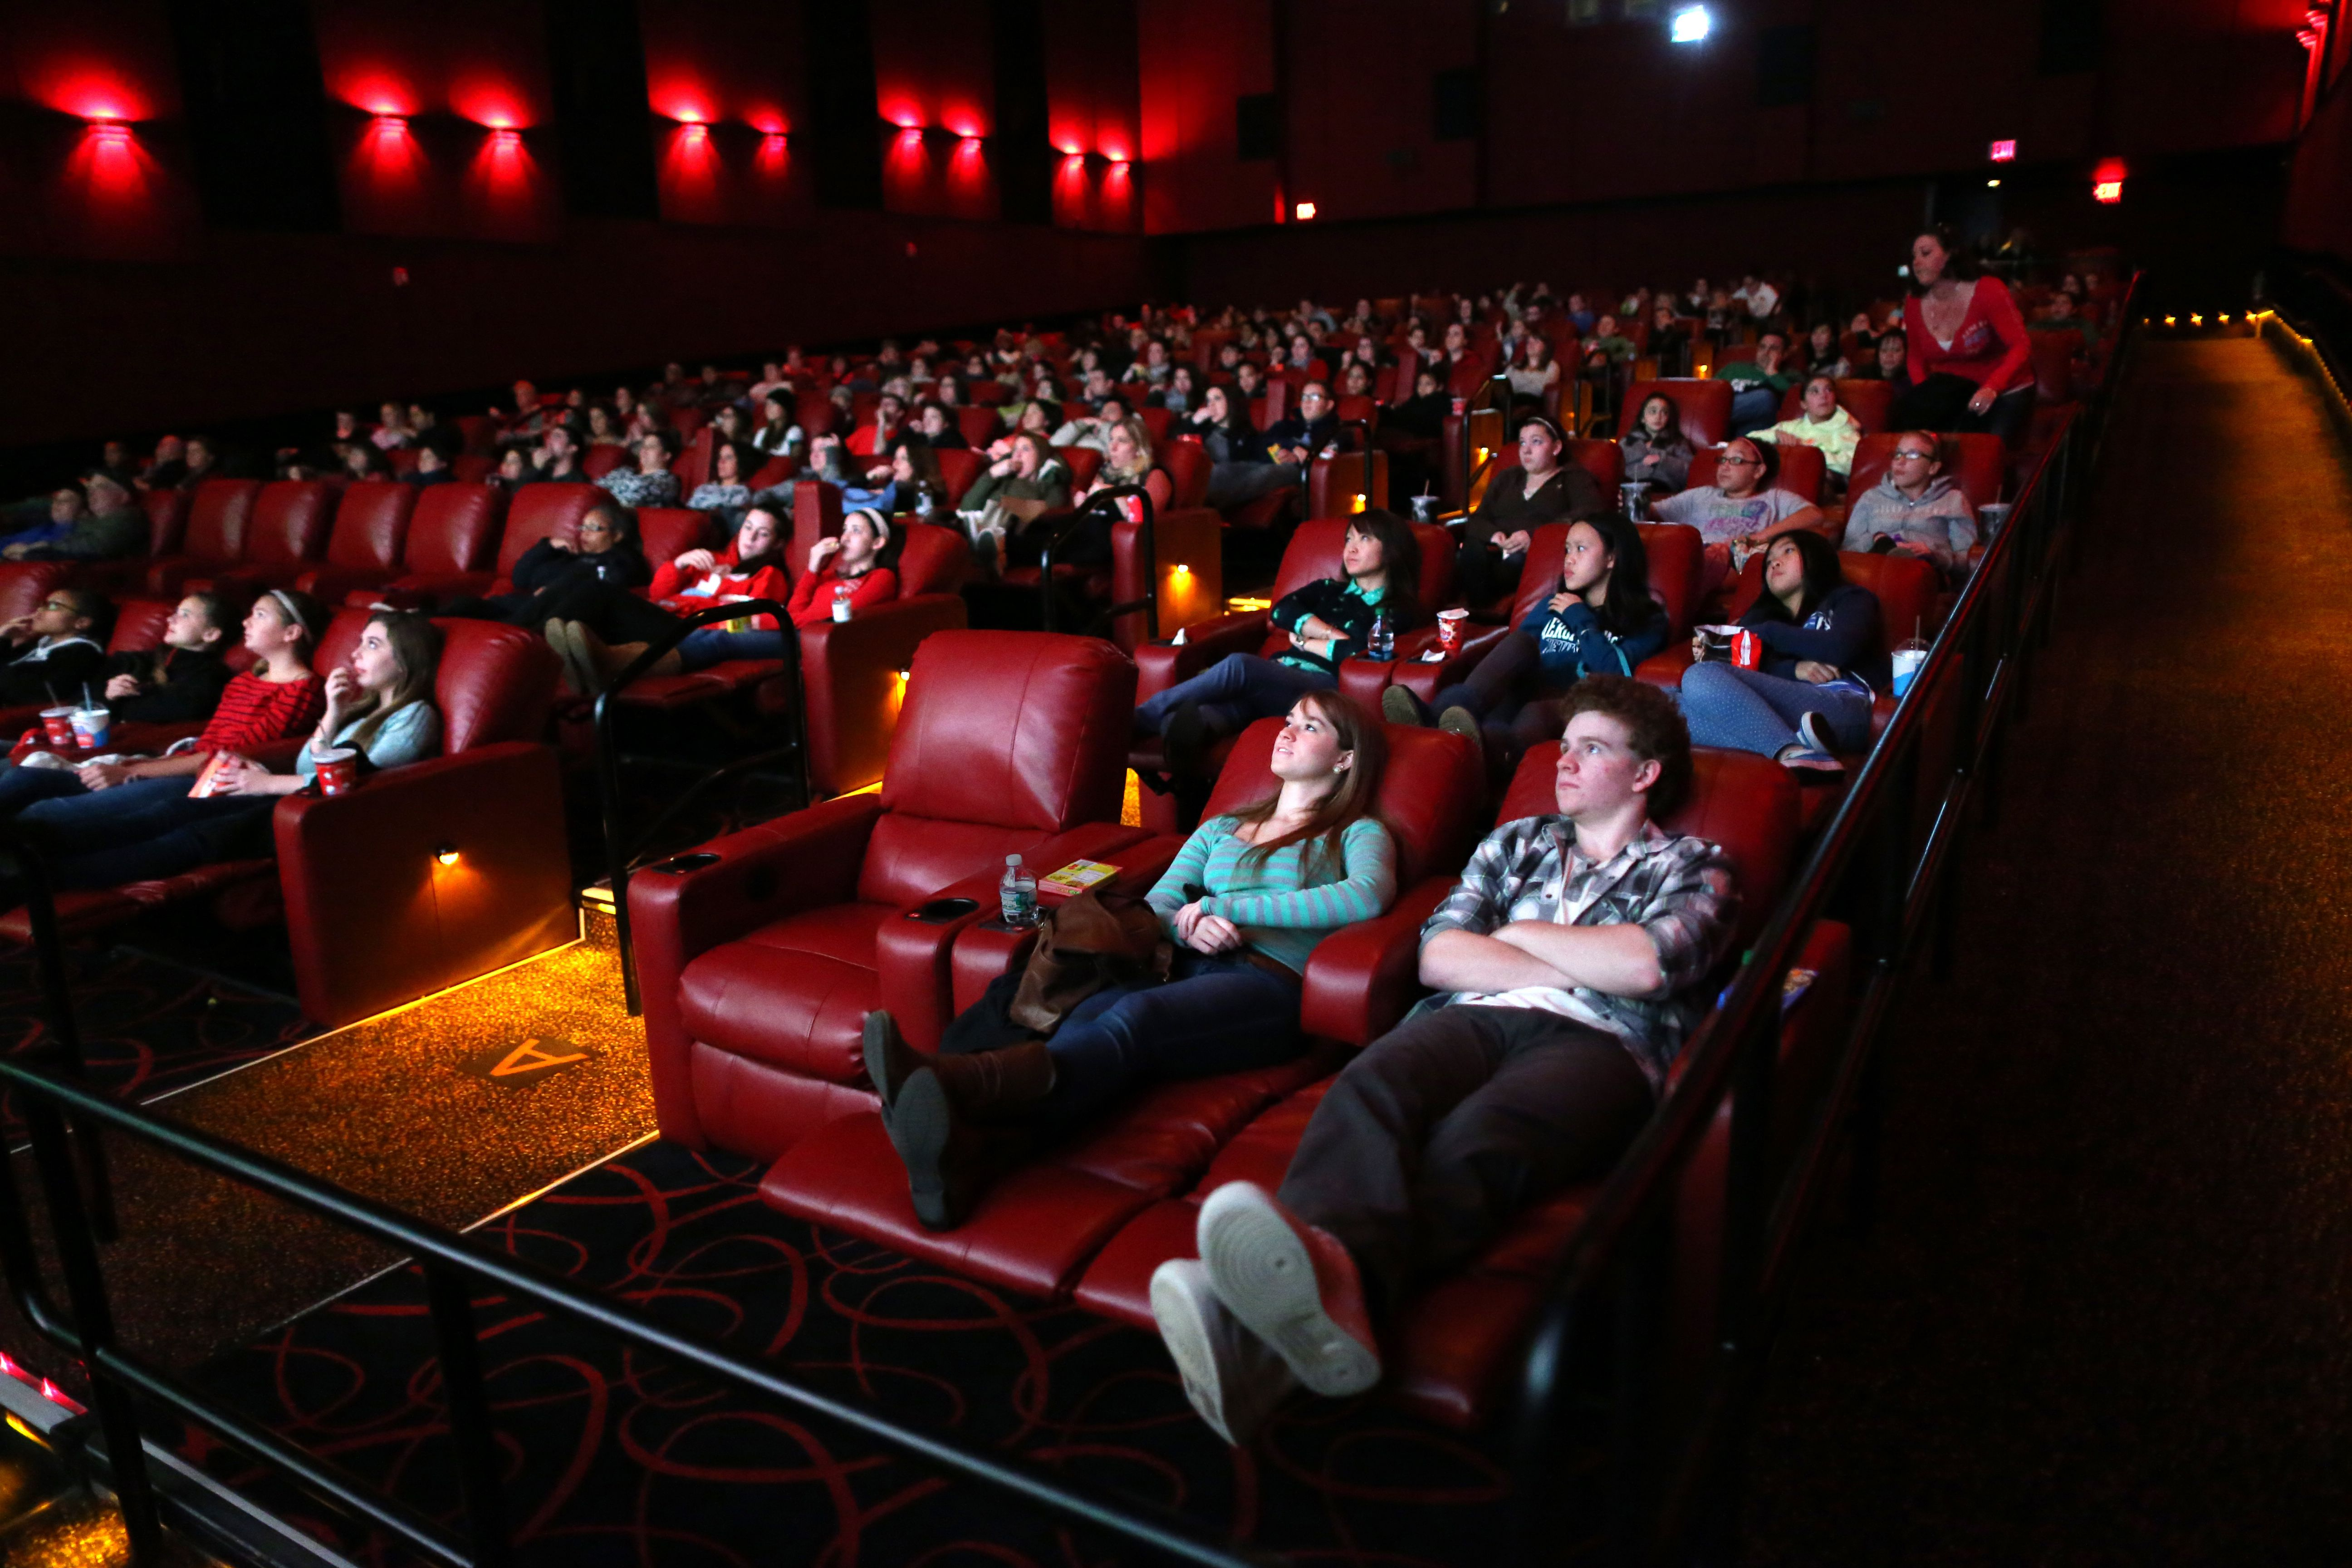 Theaters hope to lure back customers with amenities - The Boston Globe